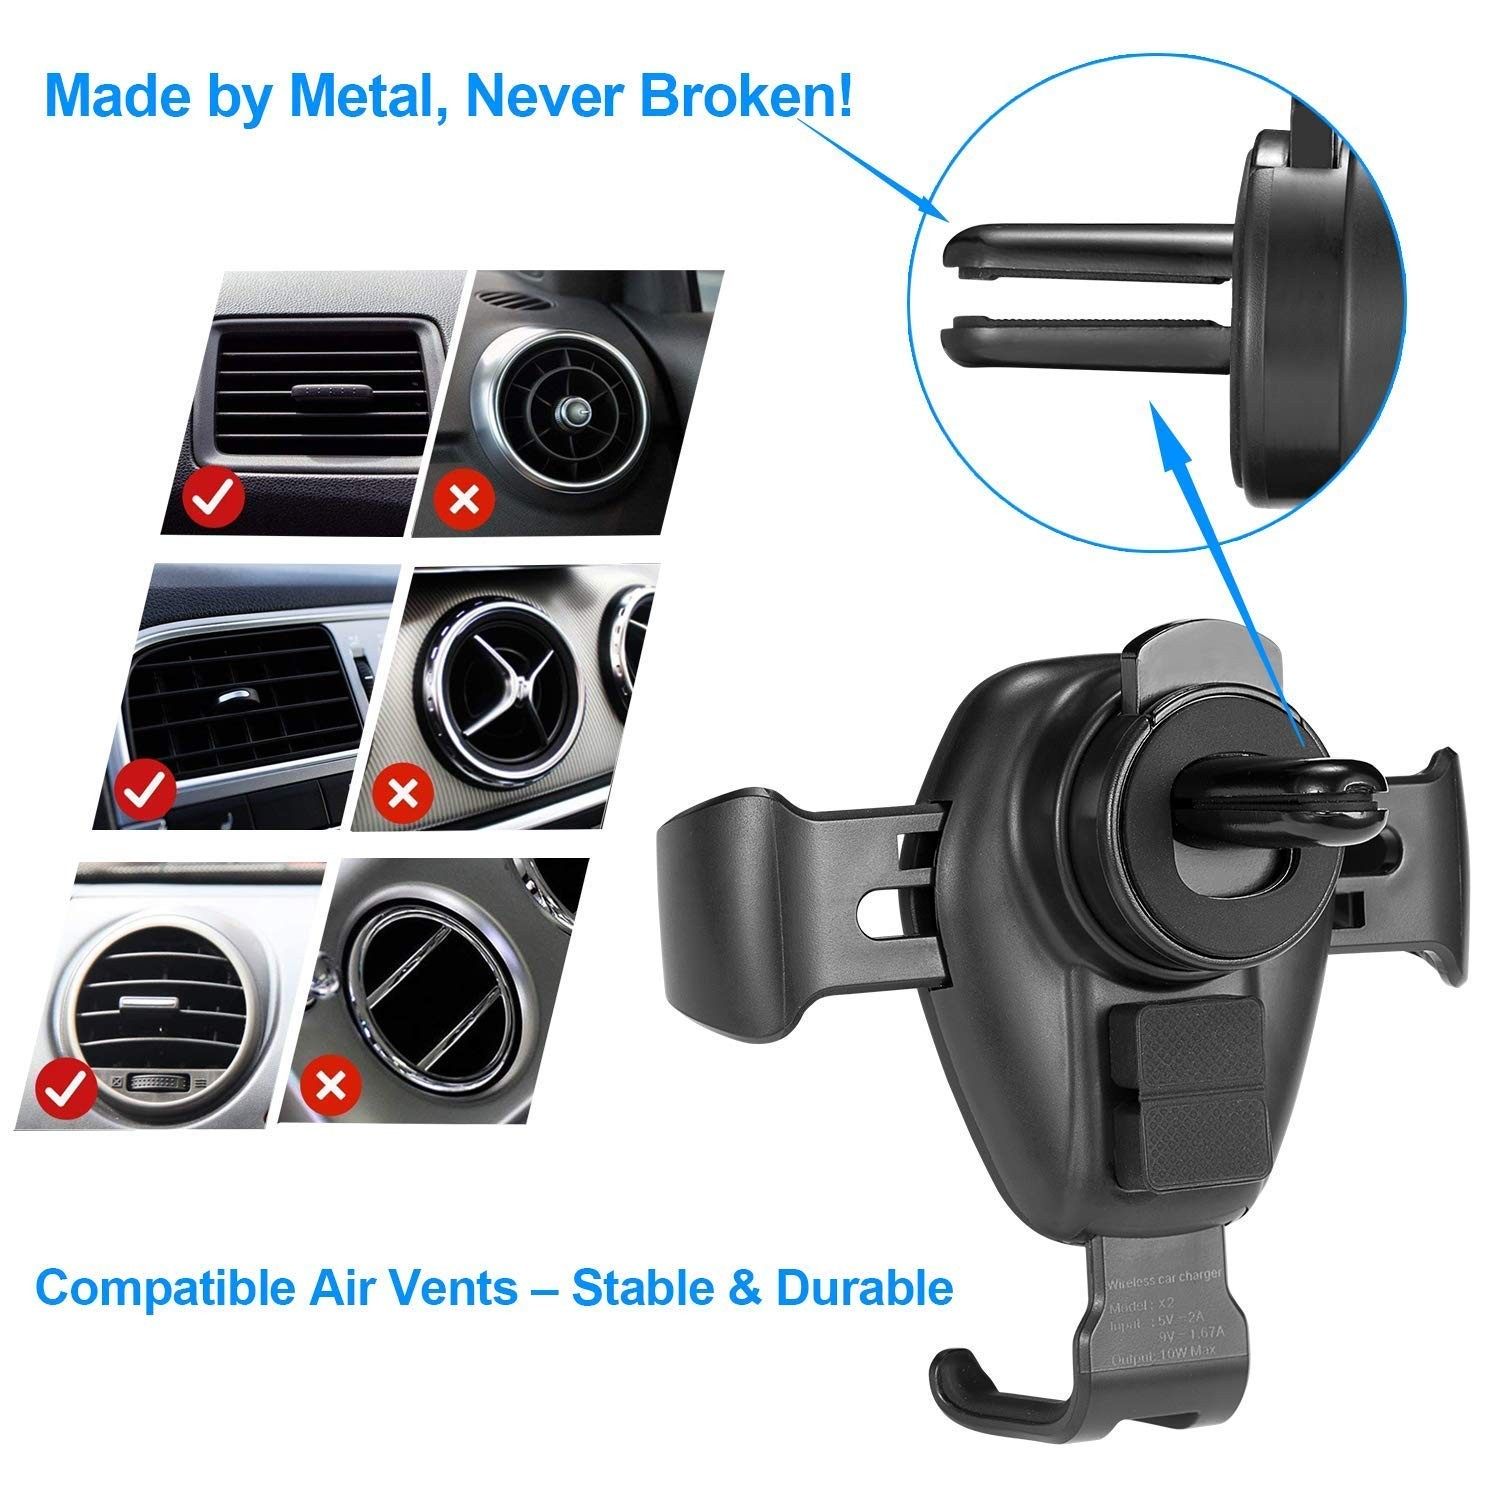 Wireless Car Charger Mount, iREIZTEC Car Holder W/ Wireless Charger Gravity Air Vent Phone Mount 10W Fast Charger for Samsung Galaxy S9 S9 S9+ S8 S8+ S7/S7 Edge Note 8 & Standard Charge iPhone X 8/8 Plus